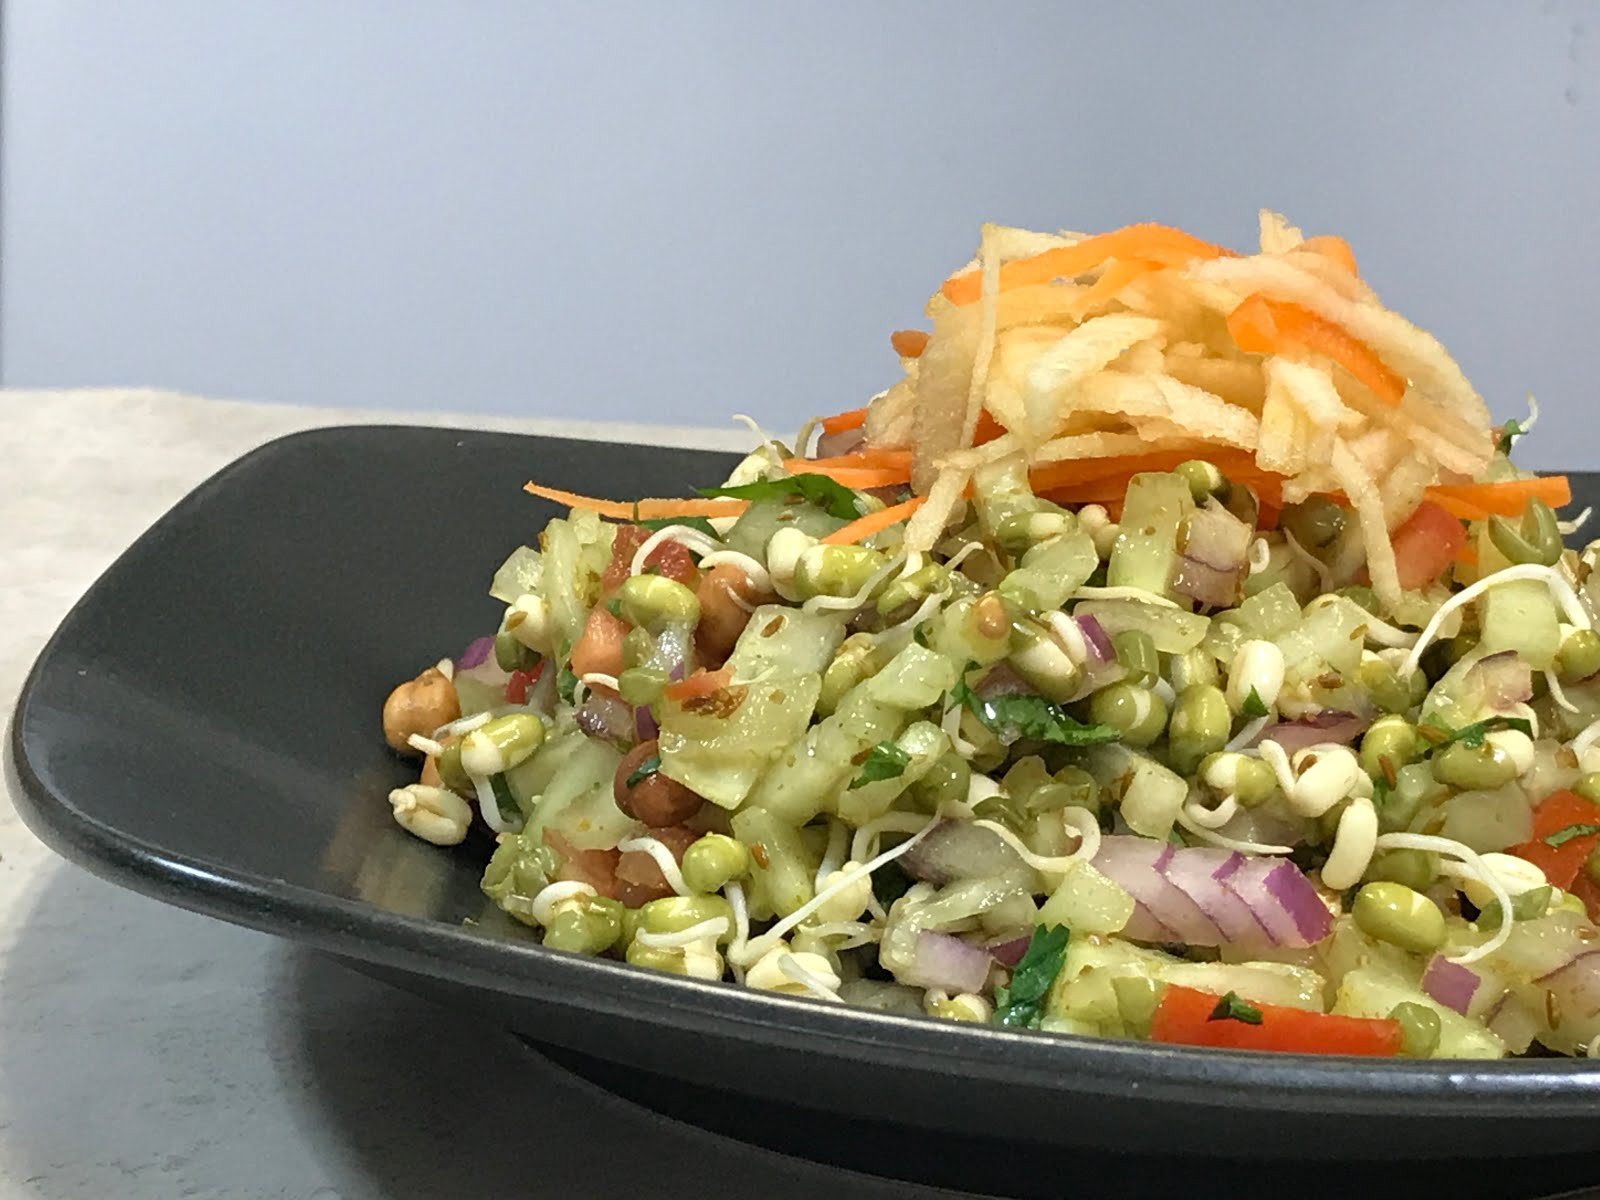 Moong sprout salad   Green moong salad   Weight loss diet